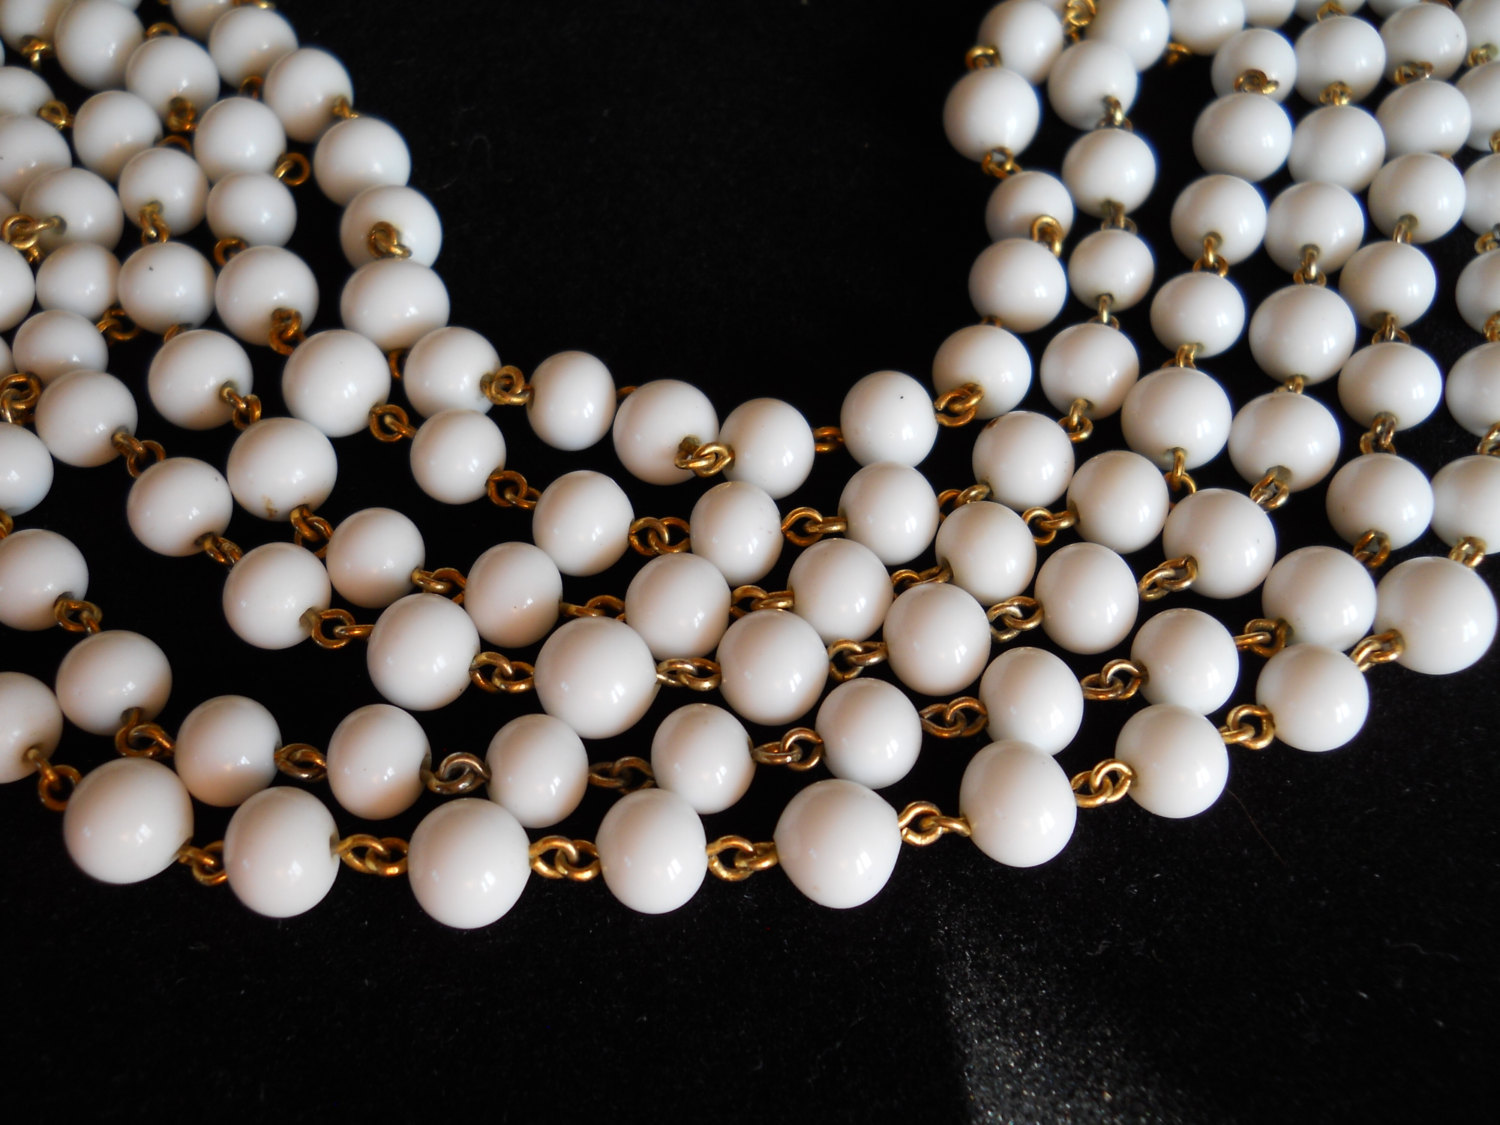 Endless Strand Necklace Milk Glass Bead and Gold Tone Metal Vintage image 3